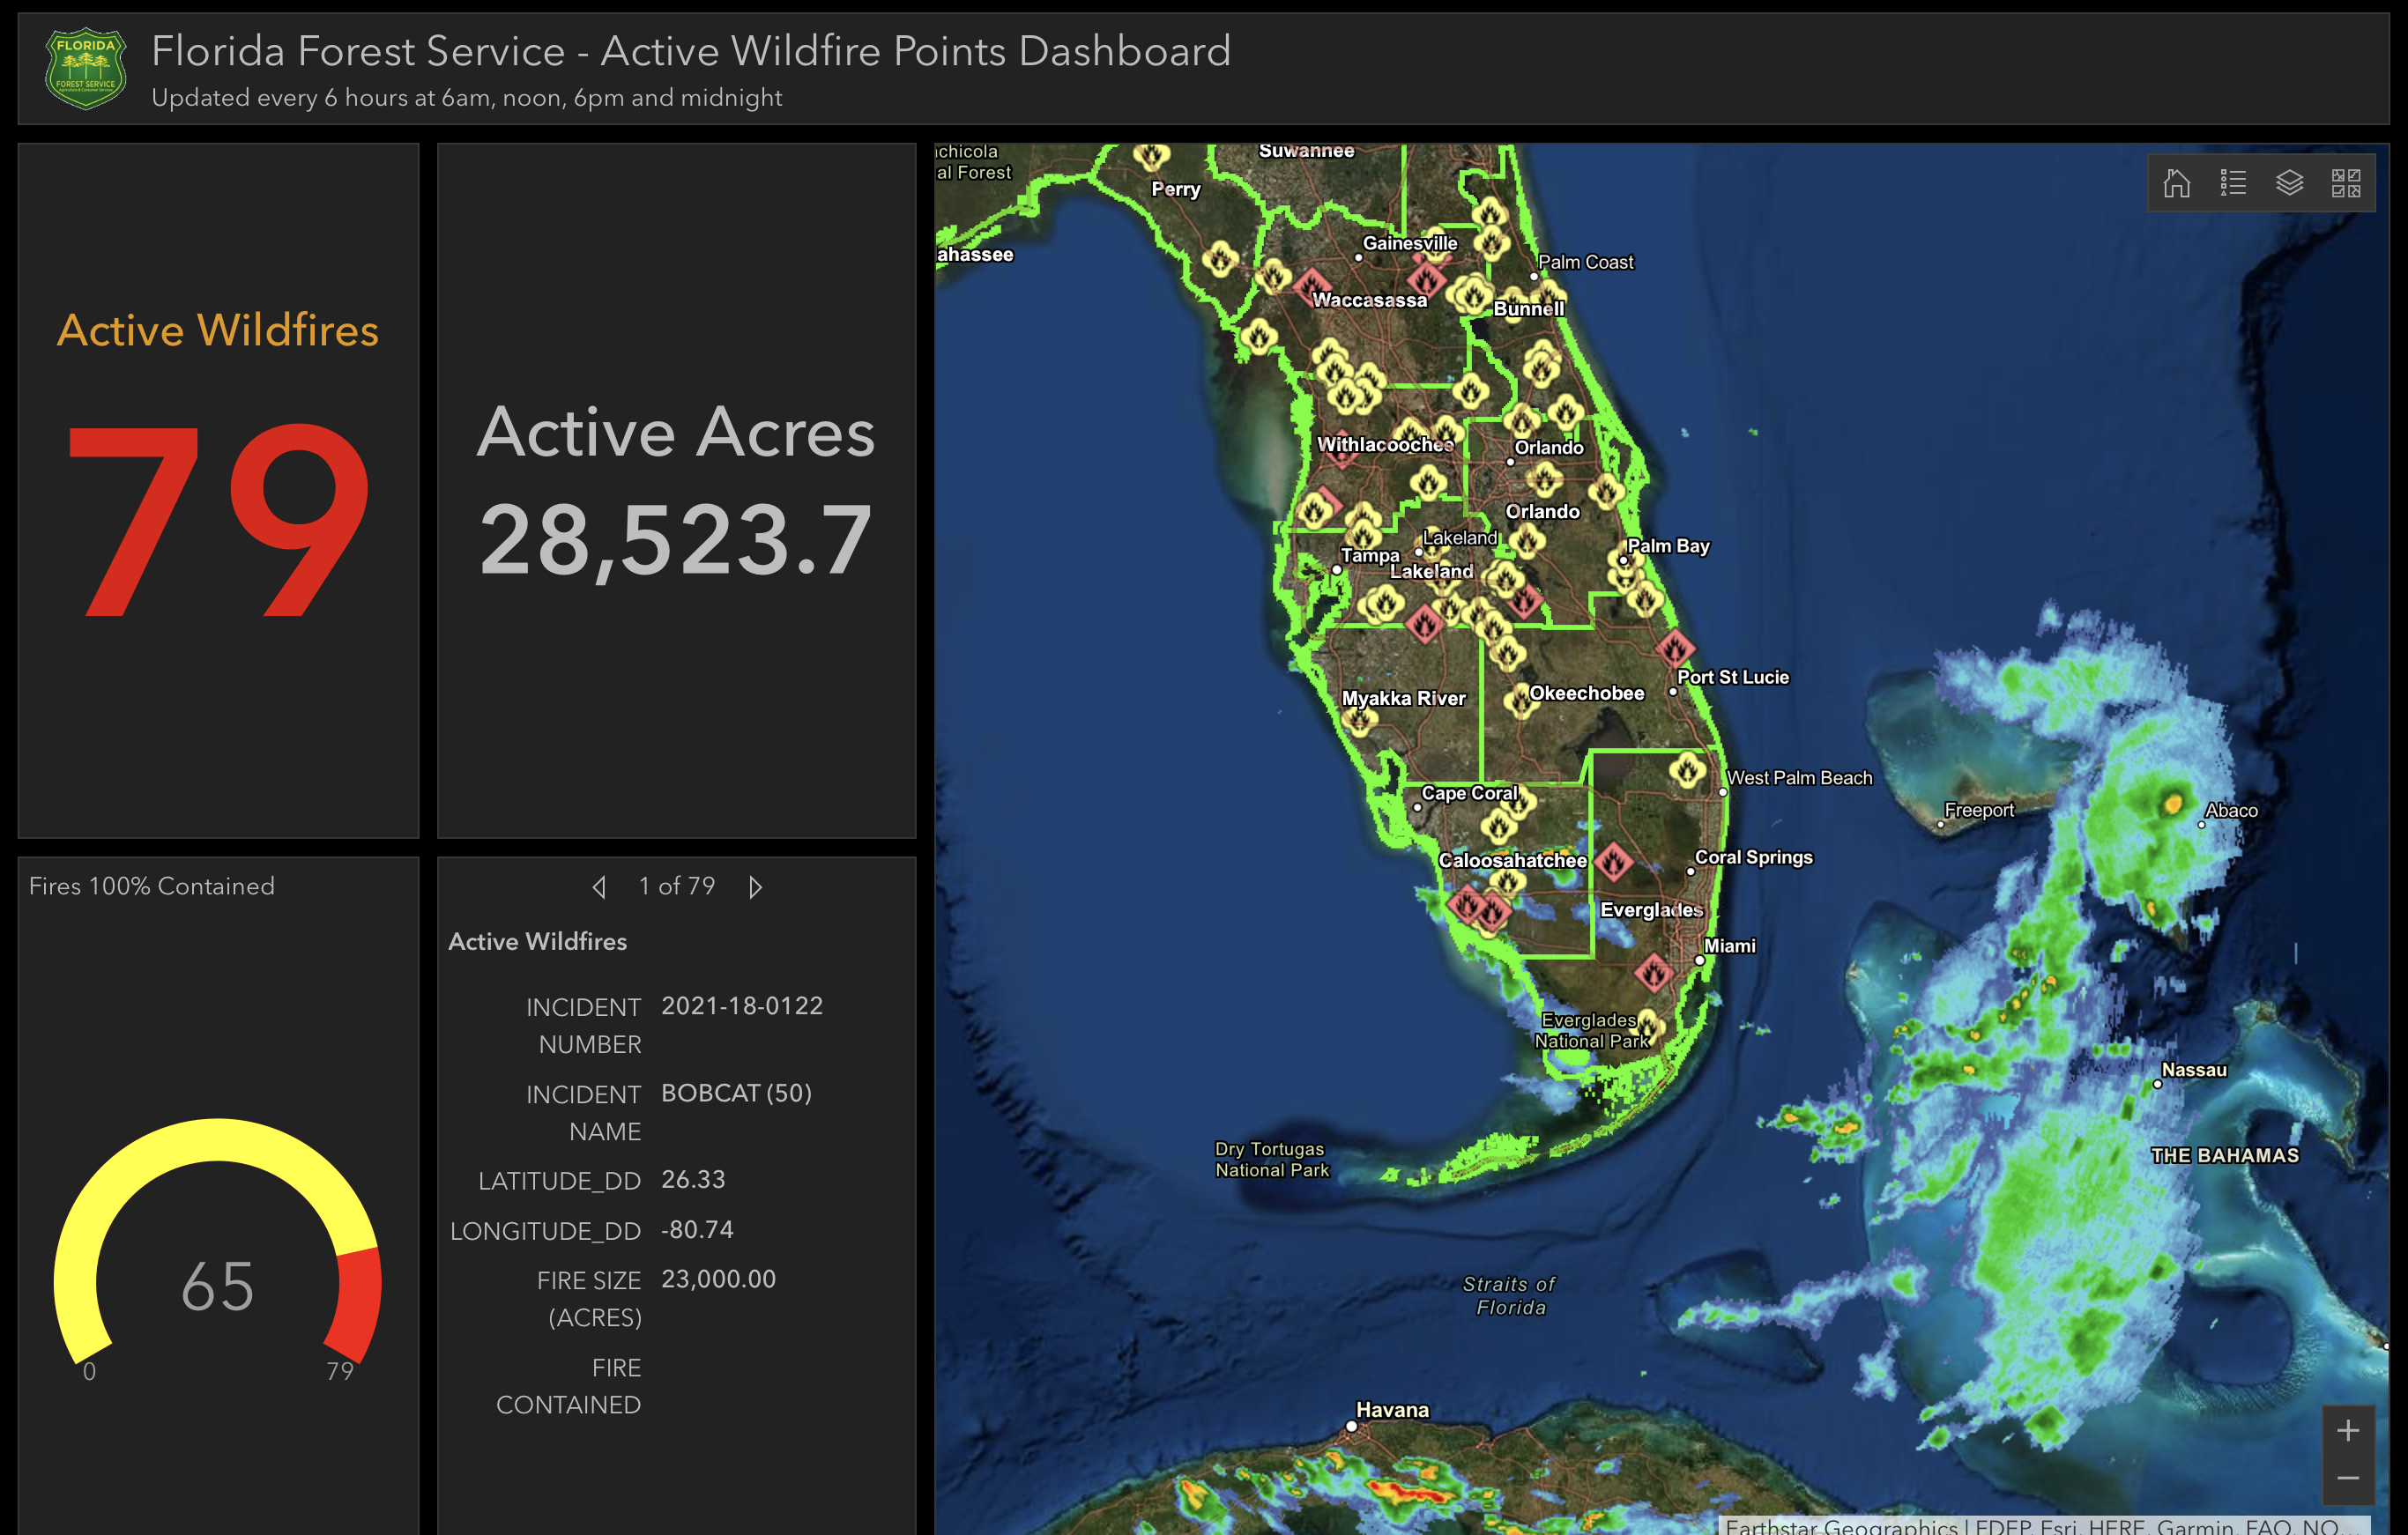 Florida forestry map